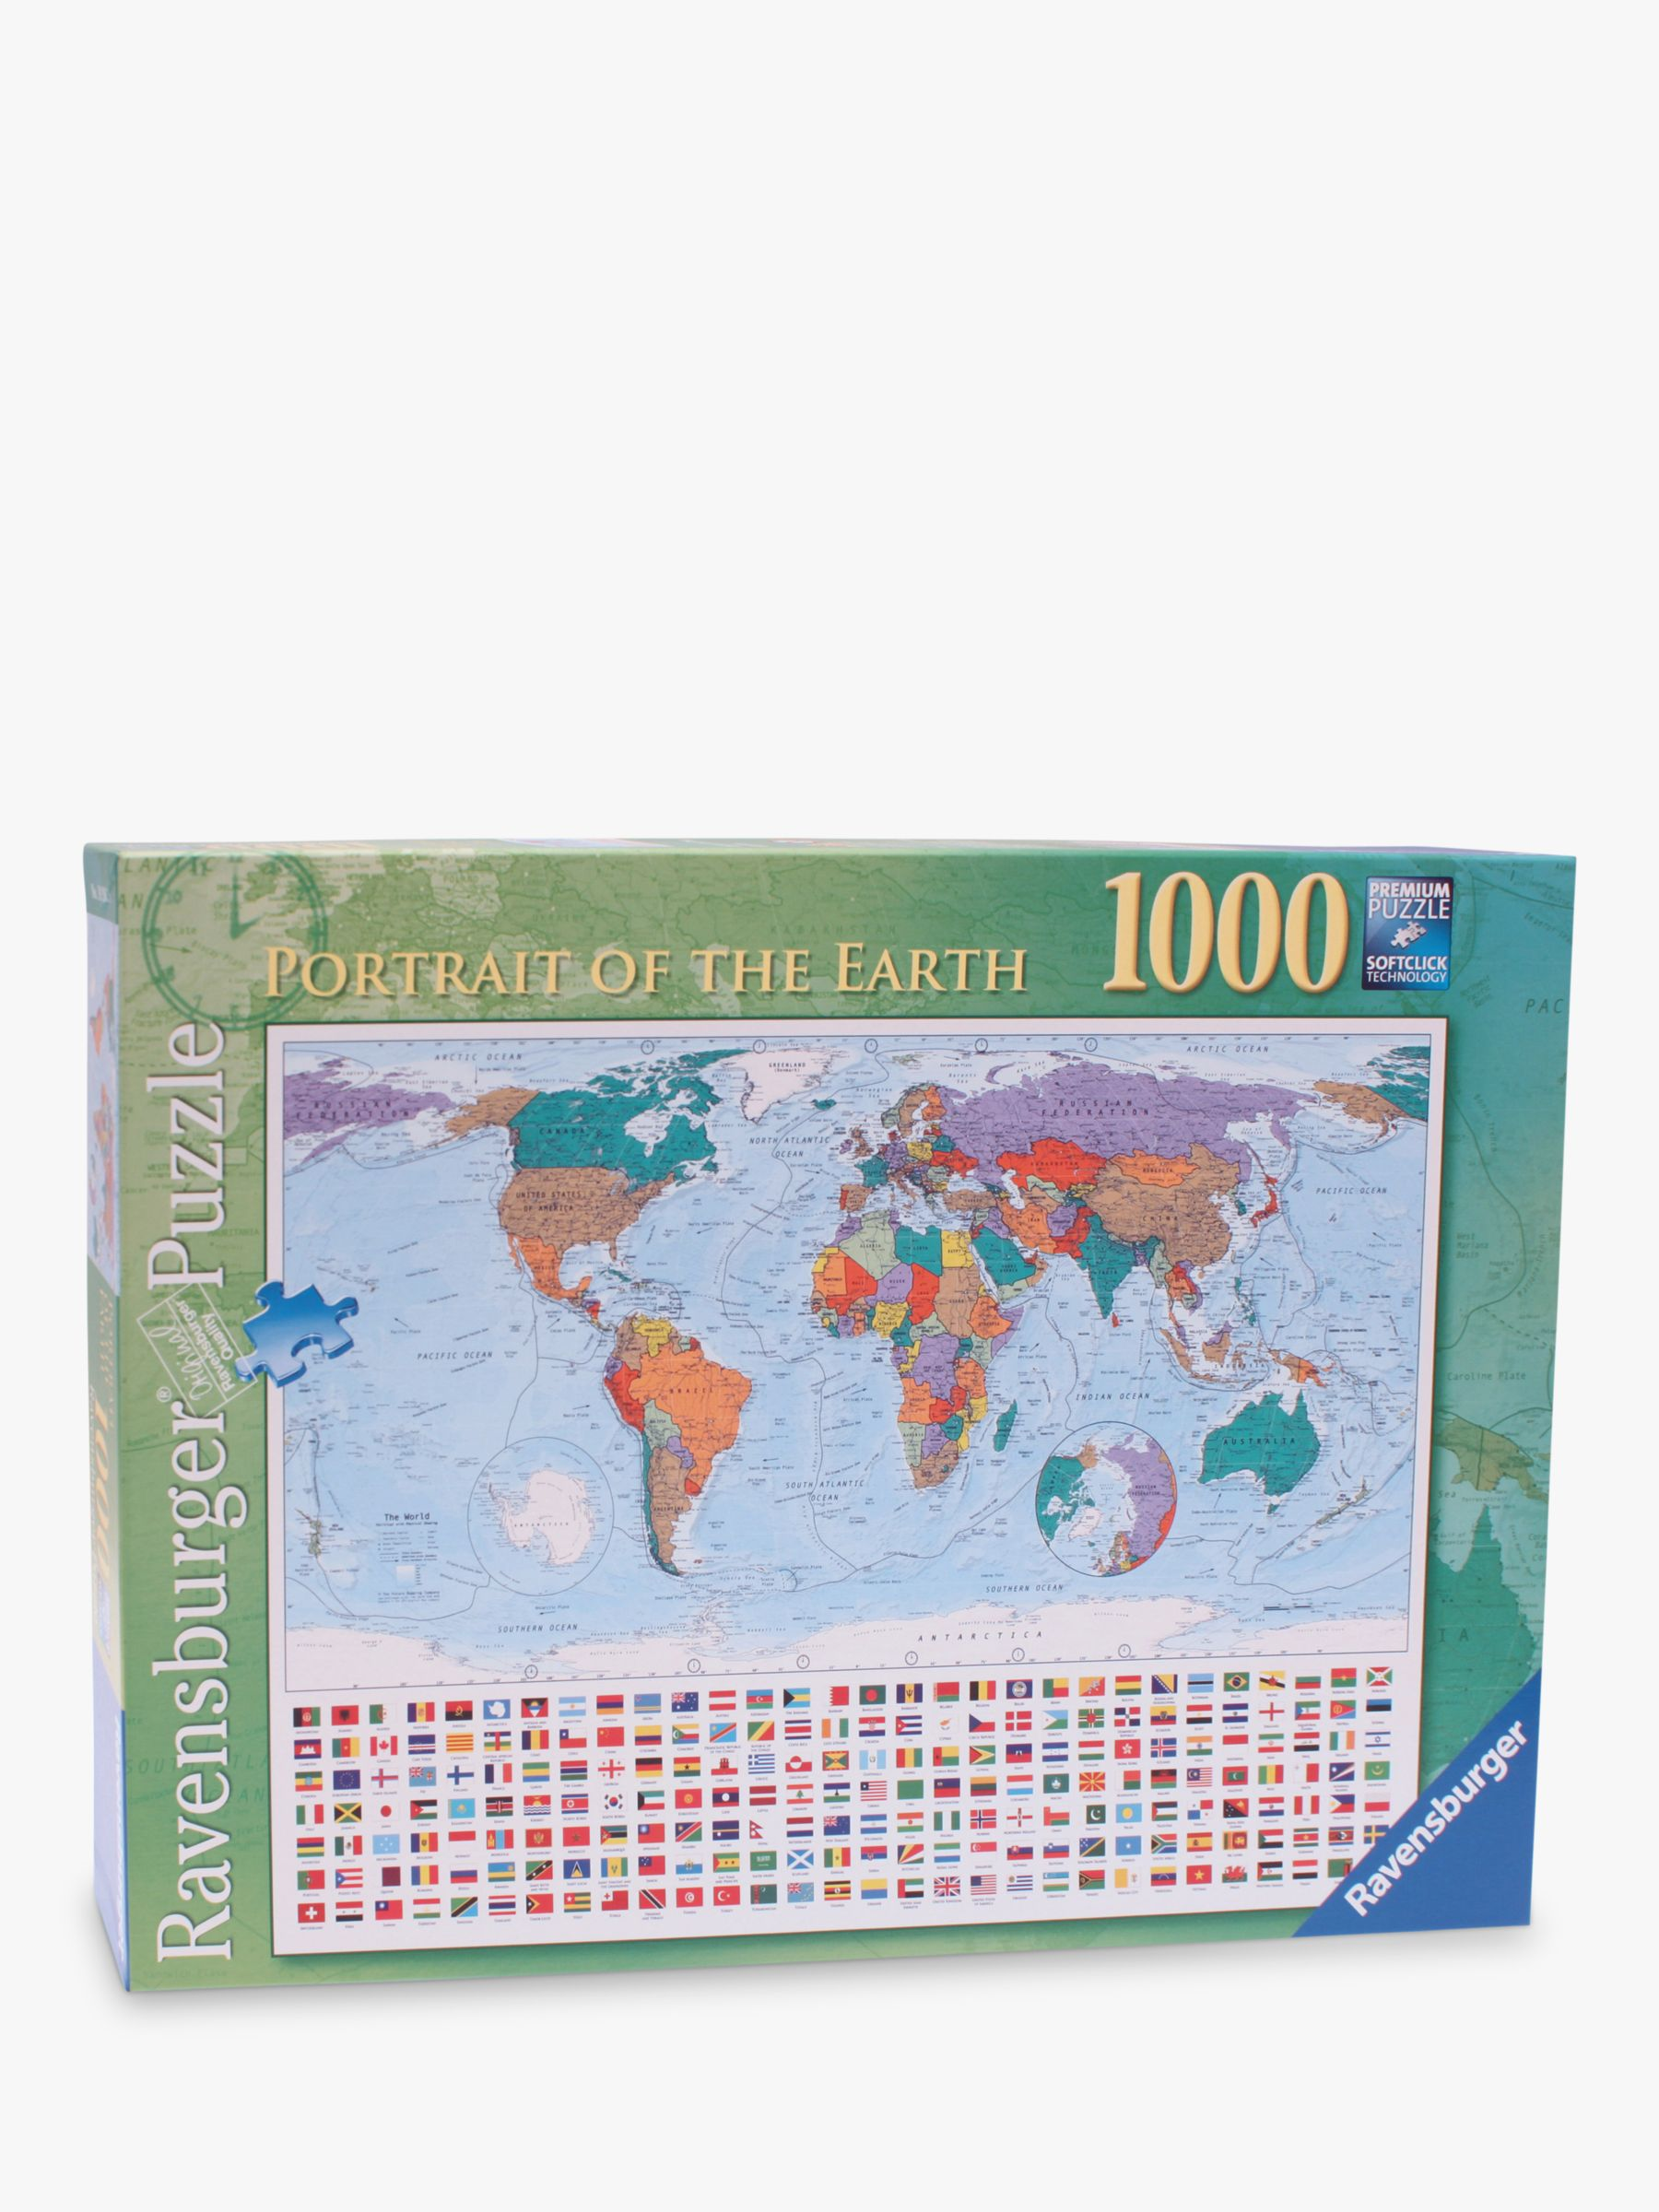 Ravensburger Ravensburger Portrait of the Earth 1000 Piece Jigsaw Puzzle